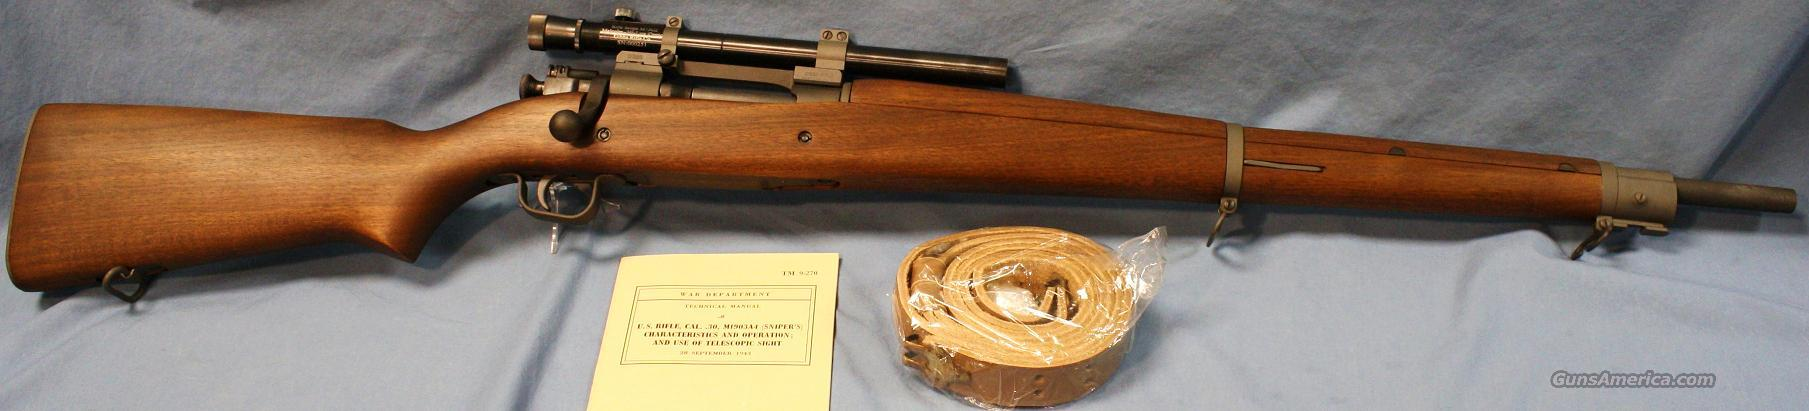 Gibbs Model 1903-A4 Remington Sniper Bolt Action Rifle .30-06  Guns > Rifles > Gibbs Rifles